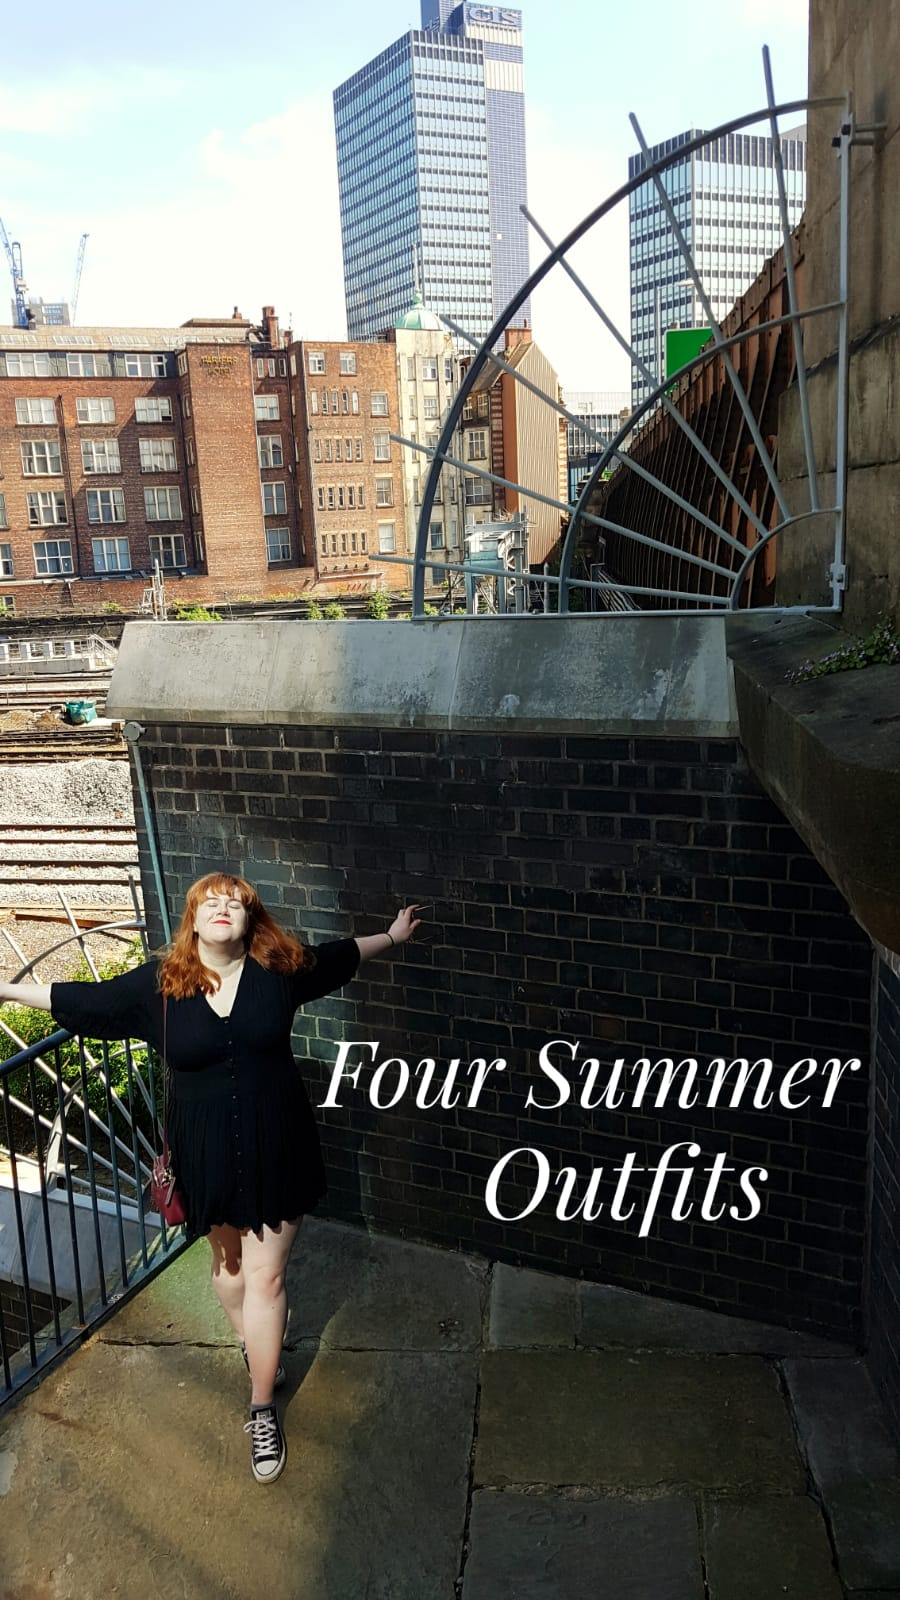 How I've made my Winter wardrobe work for Summer